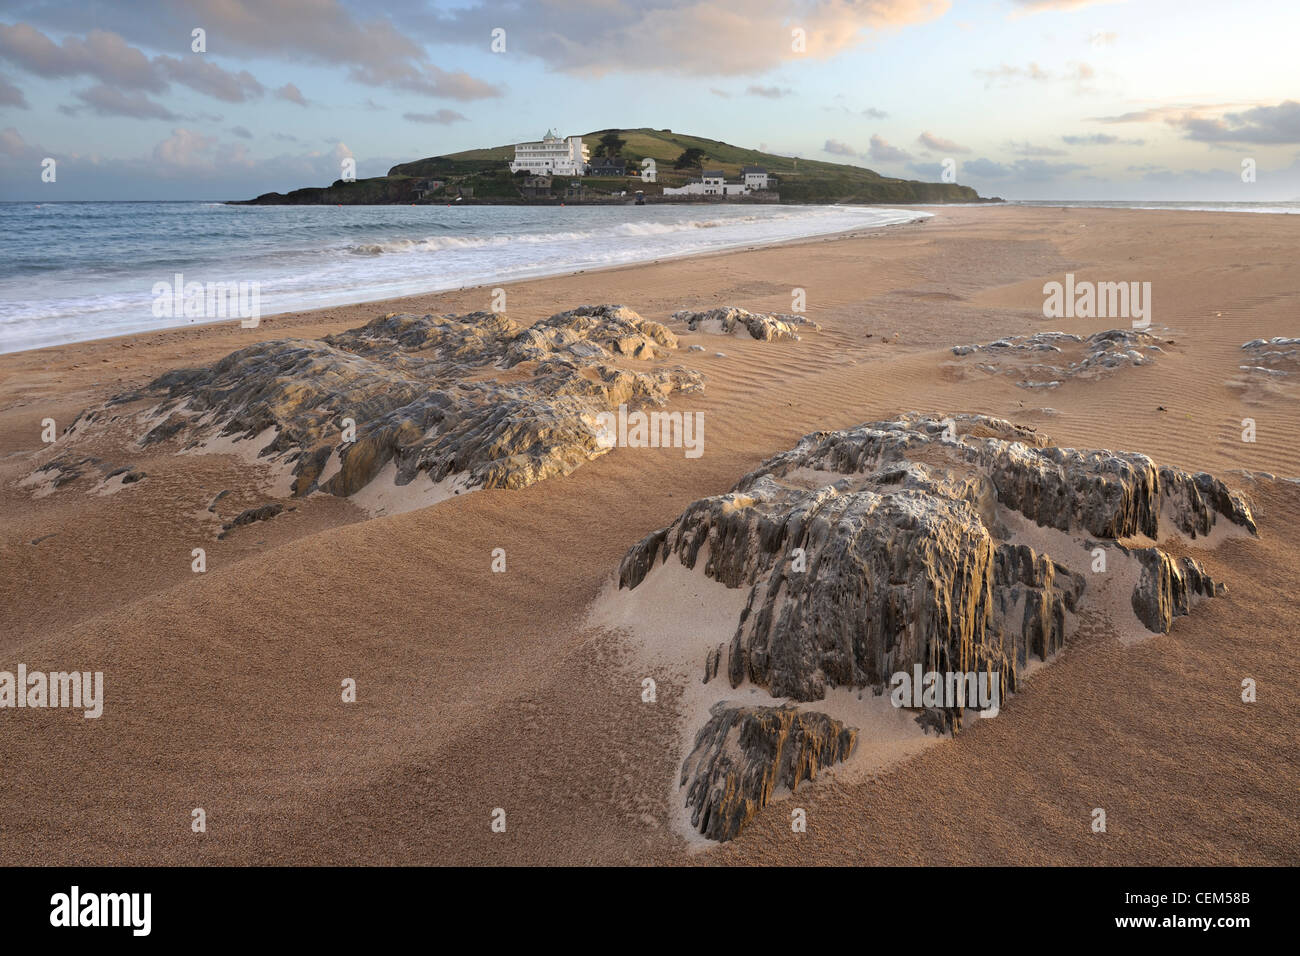 Smooth sand and rainsoaked rocks on the causeway leading to Burgh Island in the South Hams, Devon, UK. - Stock Image